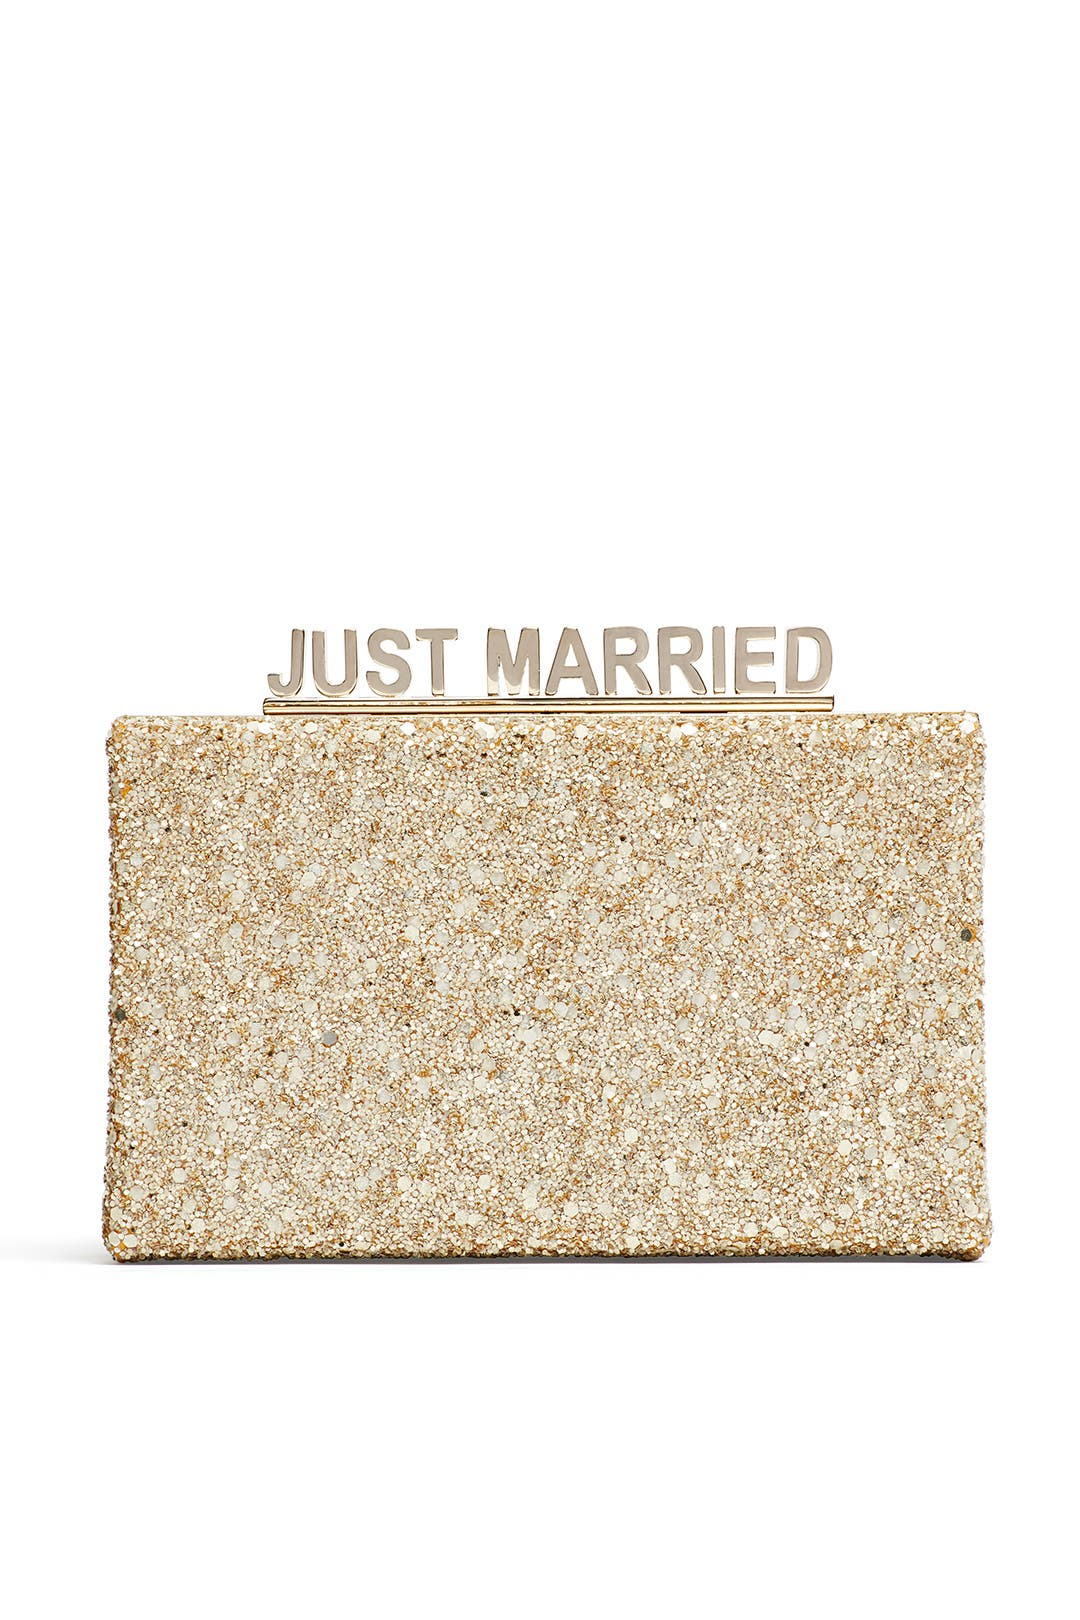 965902e879e7cd Wedding Belles Ravi Clutch by kate spade new york accessories for  140